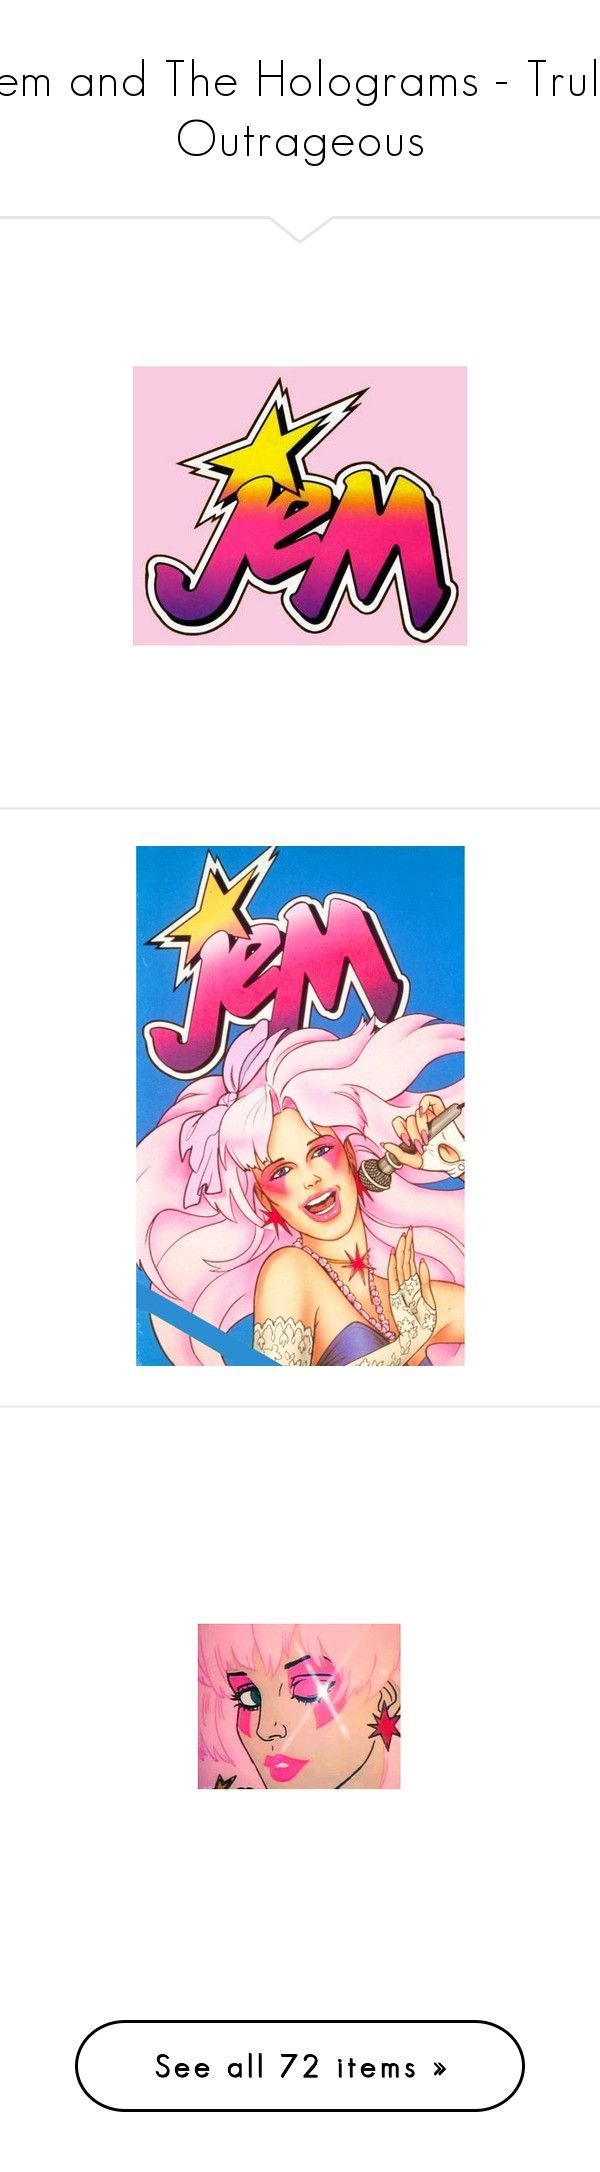 """""""Jem and The Holograms - Truly Outrageous"""" by twistedvine ❤ liked on Polyvore featuring jem, jem and the holograms, pictures, cartoon, beauty products, makeup, eye makeup, eyeshadow, sephora collection eyeshadow and palette eyeshadow"""